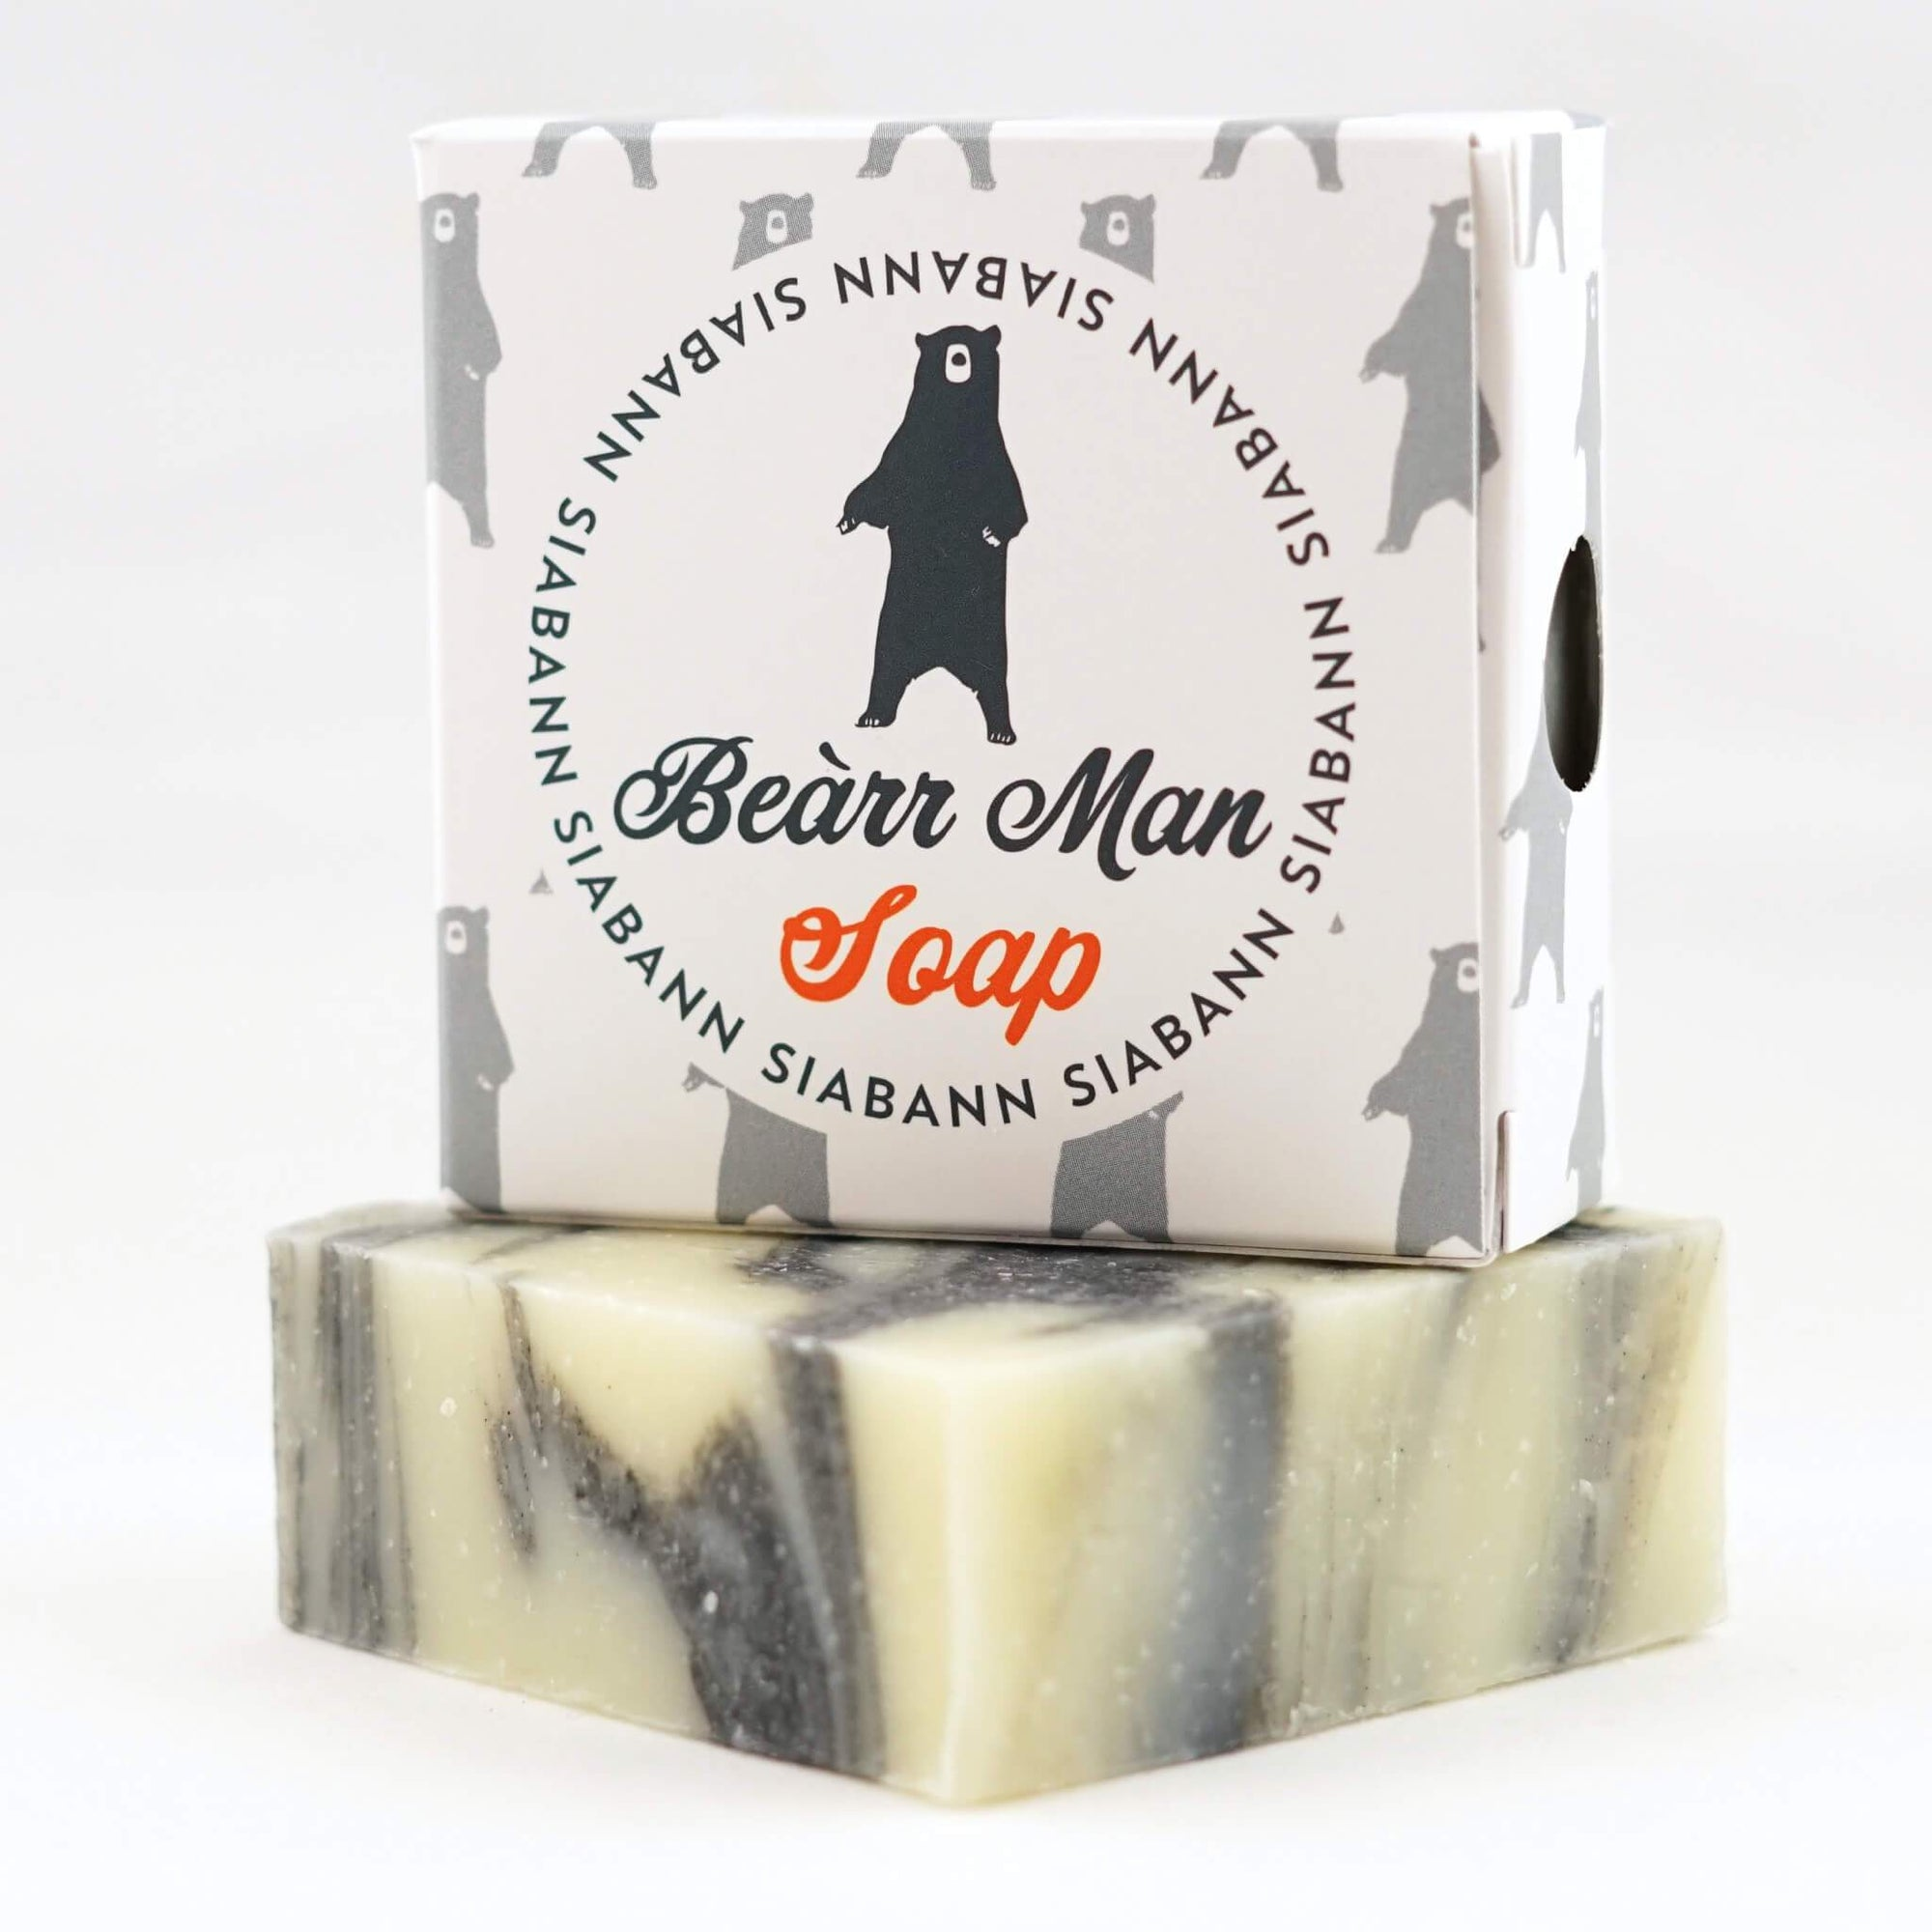 Men's Charcoal Soap - Gift - BoxTree